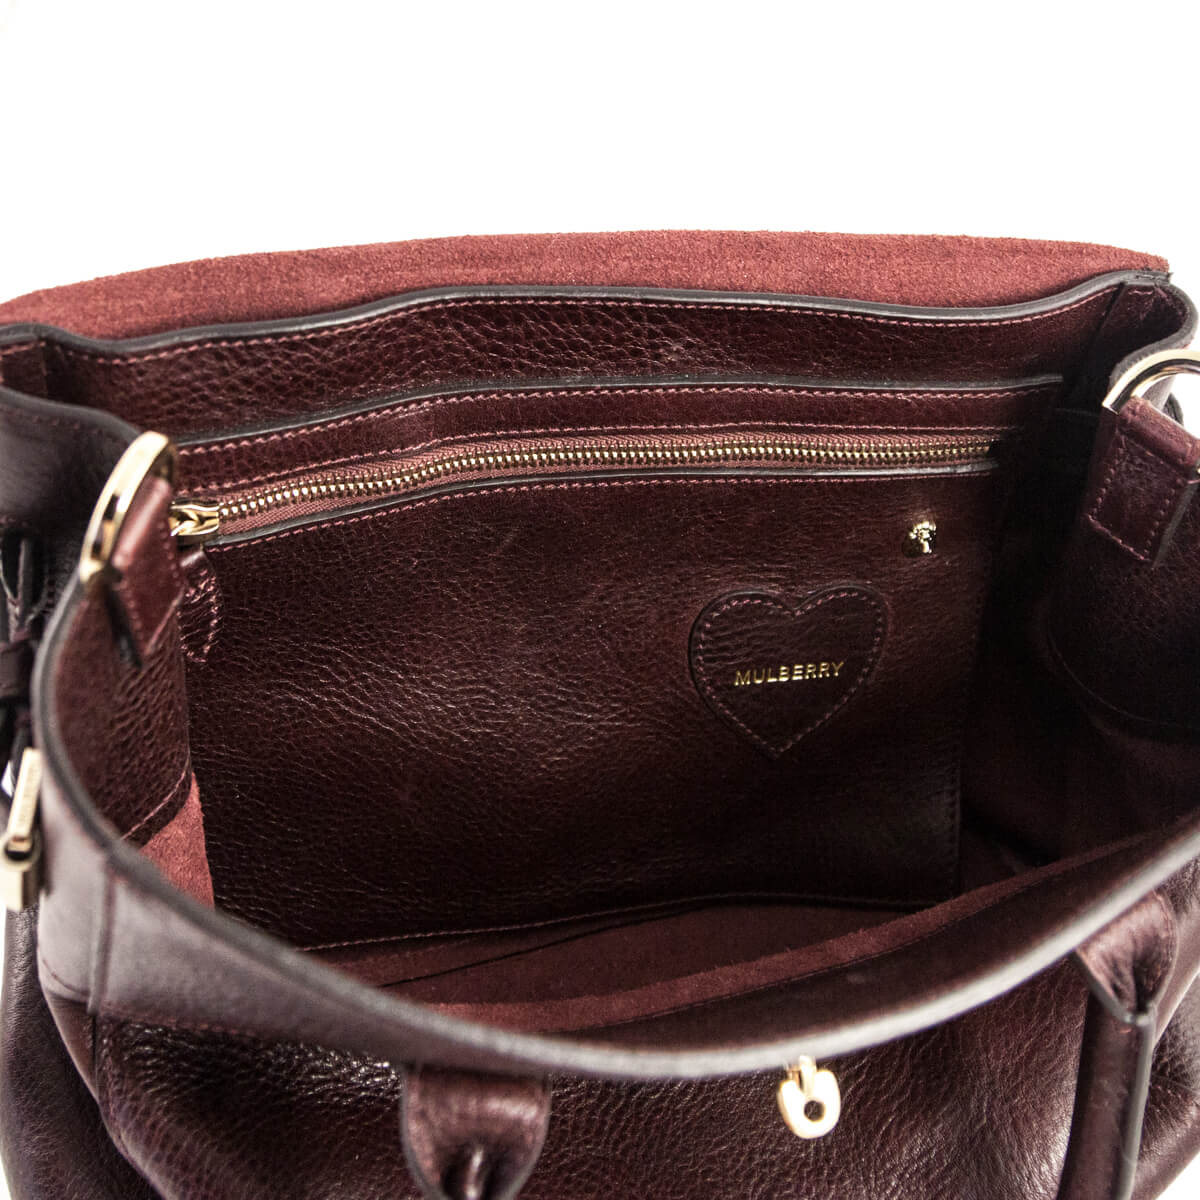 5801bdb166 ... Mulberry Oxblood Cara Delevingne Convertible Backpack - LOVE that BAG -  Preowned Authentic Designer Handbags ...